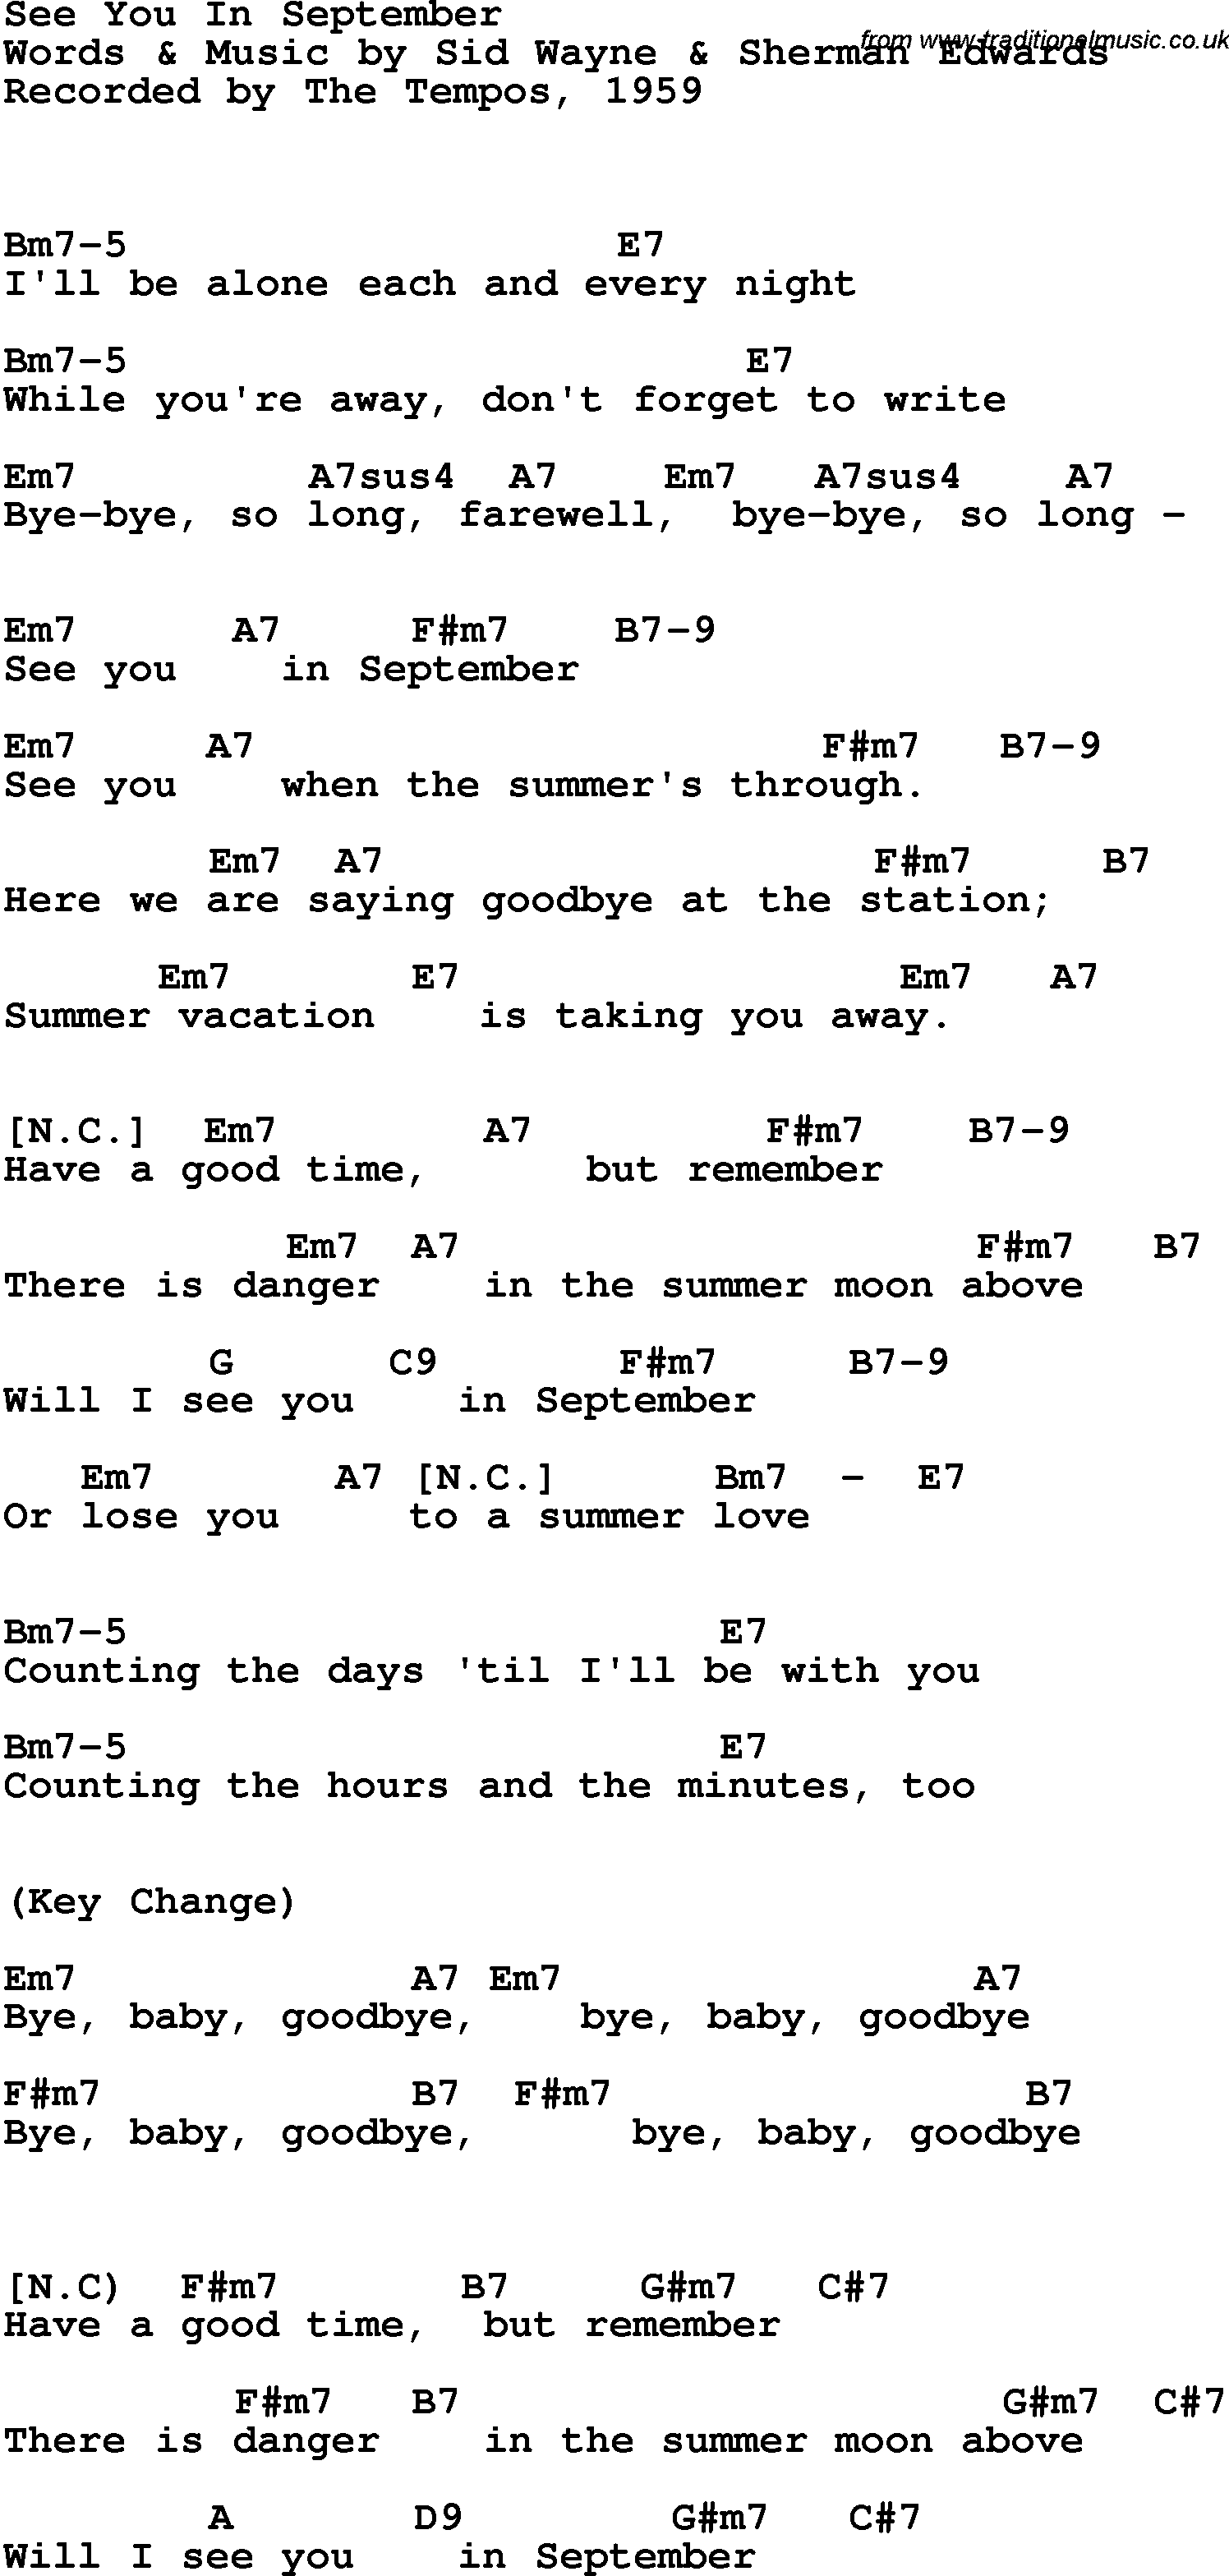 Song Lyrics With Guitar Chords For See You In September The Tempos